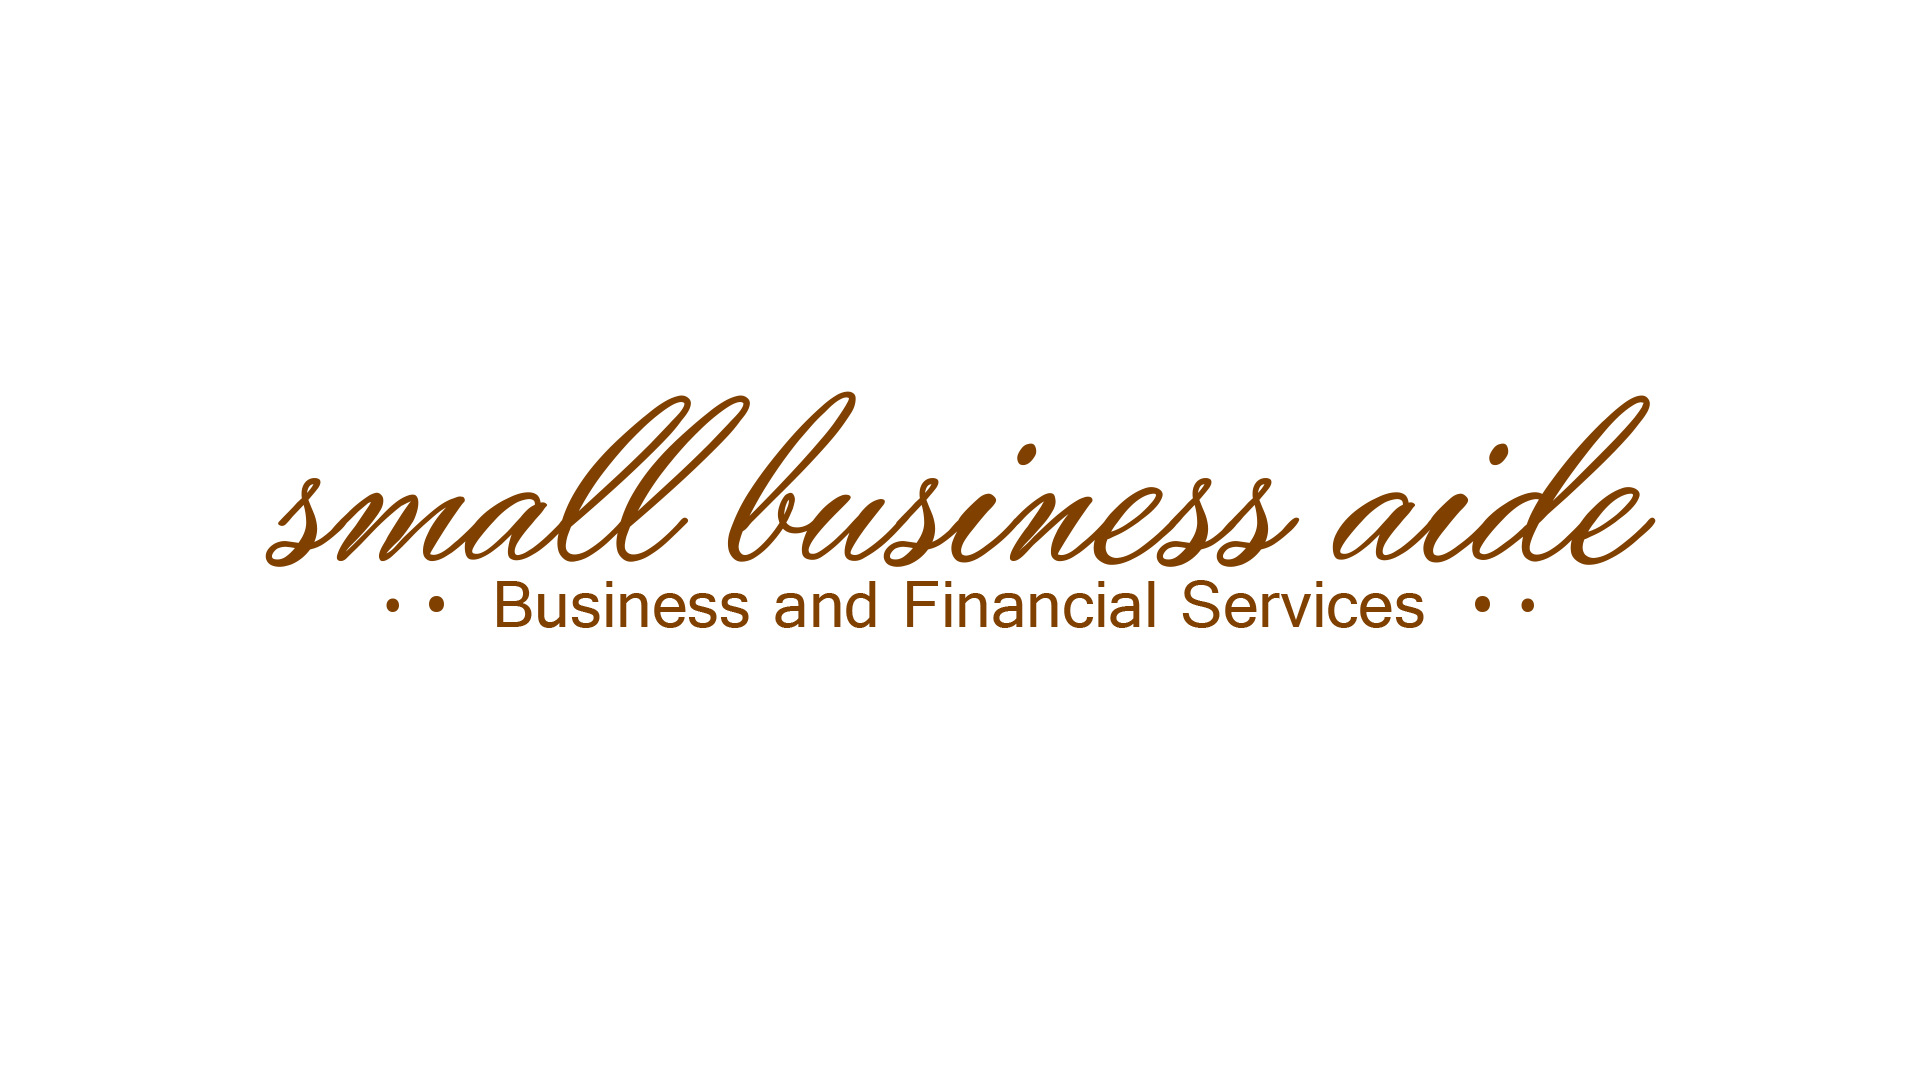 Small Business Aide